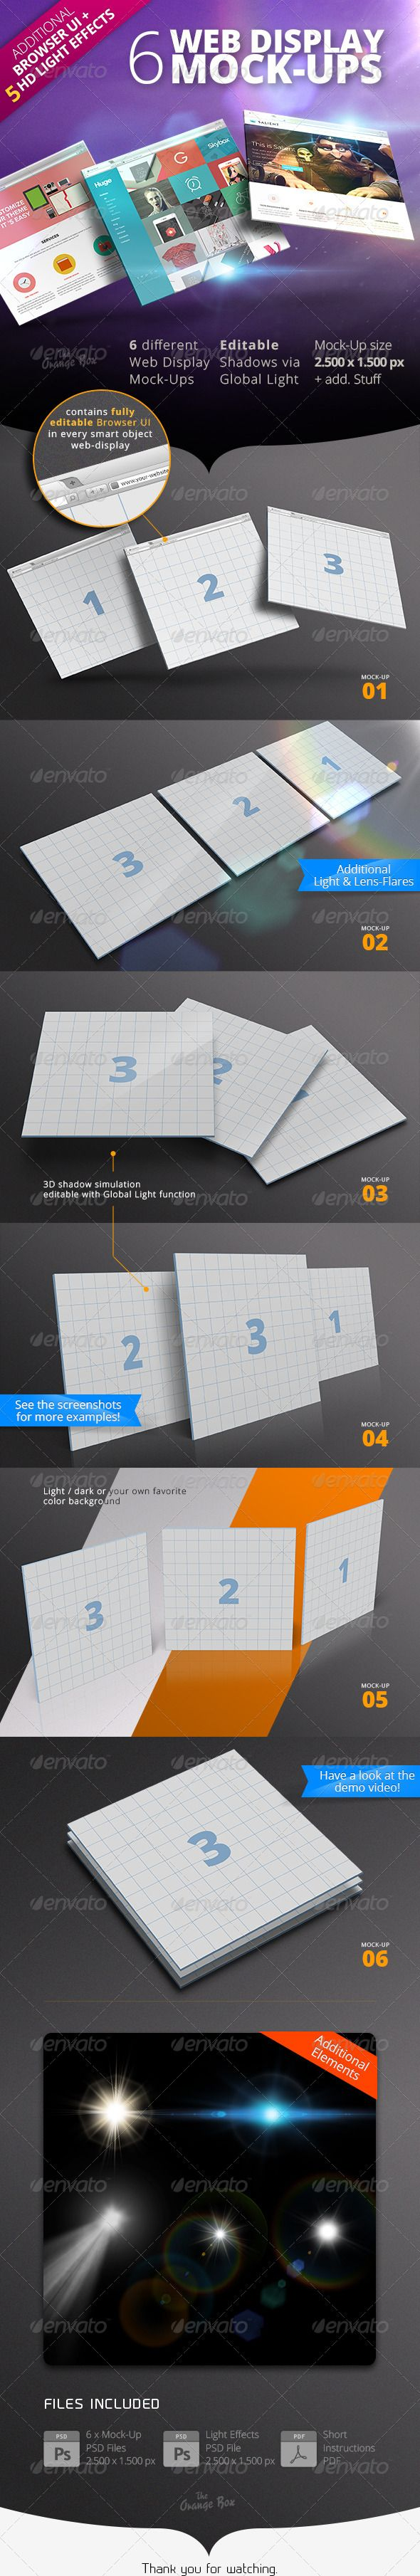 3D Web Display Mock-Up Set + Light Effects  #effects #frame #homepage • Available here → http://graphicriver.net/item/3d-web-display-mockup-set-light-effects/6914389?s_rank=67&ref=pxcr